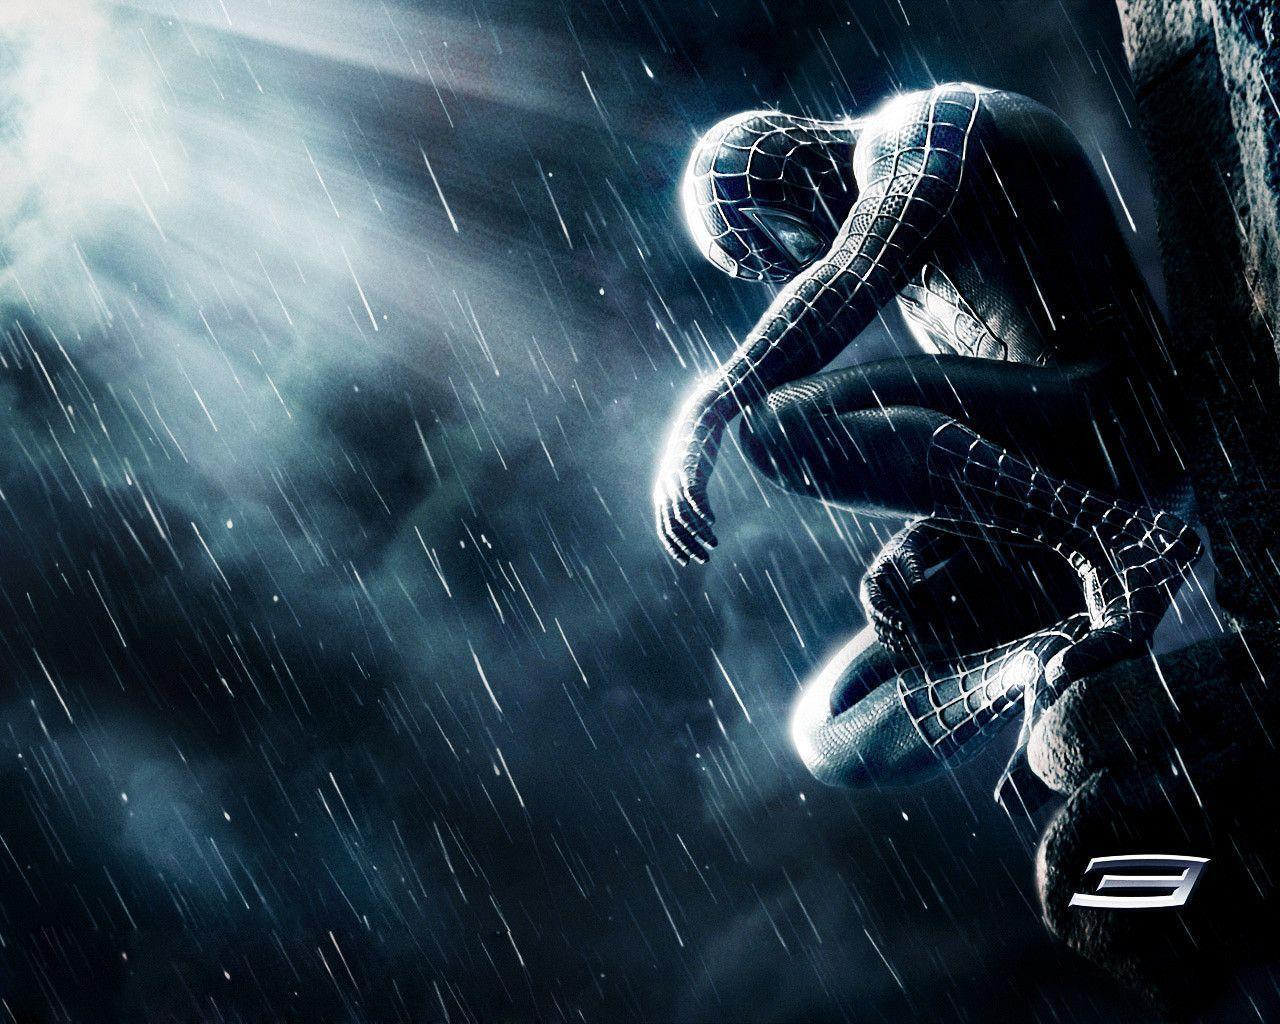 Spiderman HD Wallpapers | Spider Desktop HD Wallpaper | Cool ...